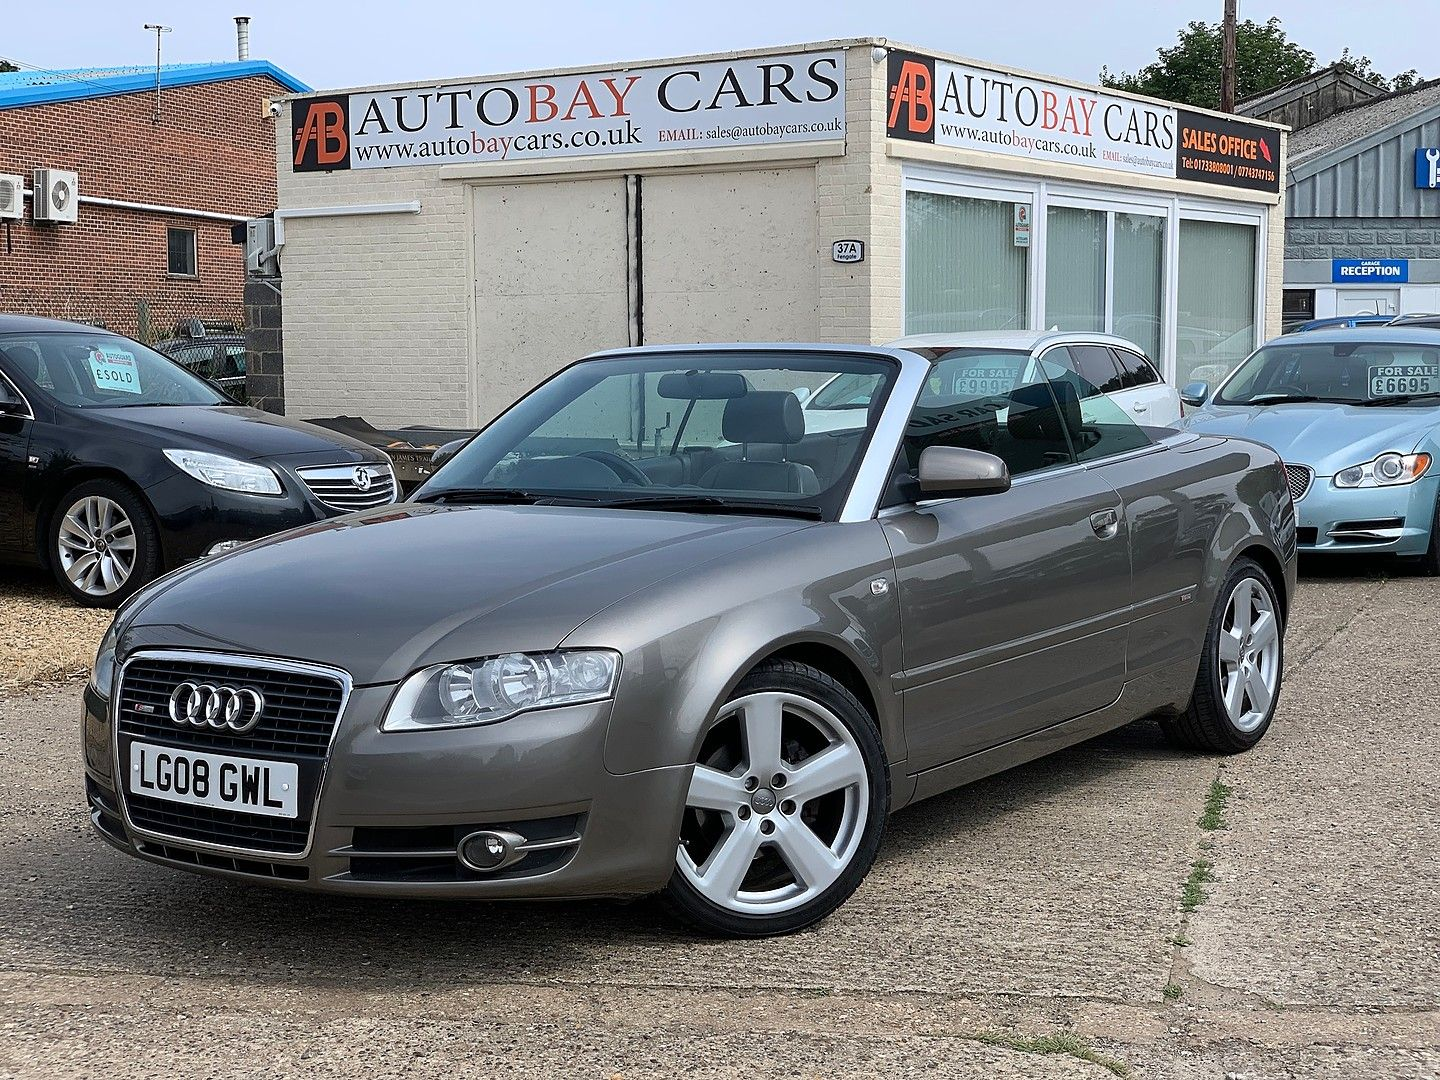 AUDIA42.0 TDI S line for sale